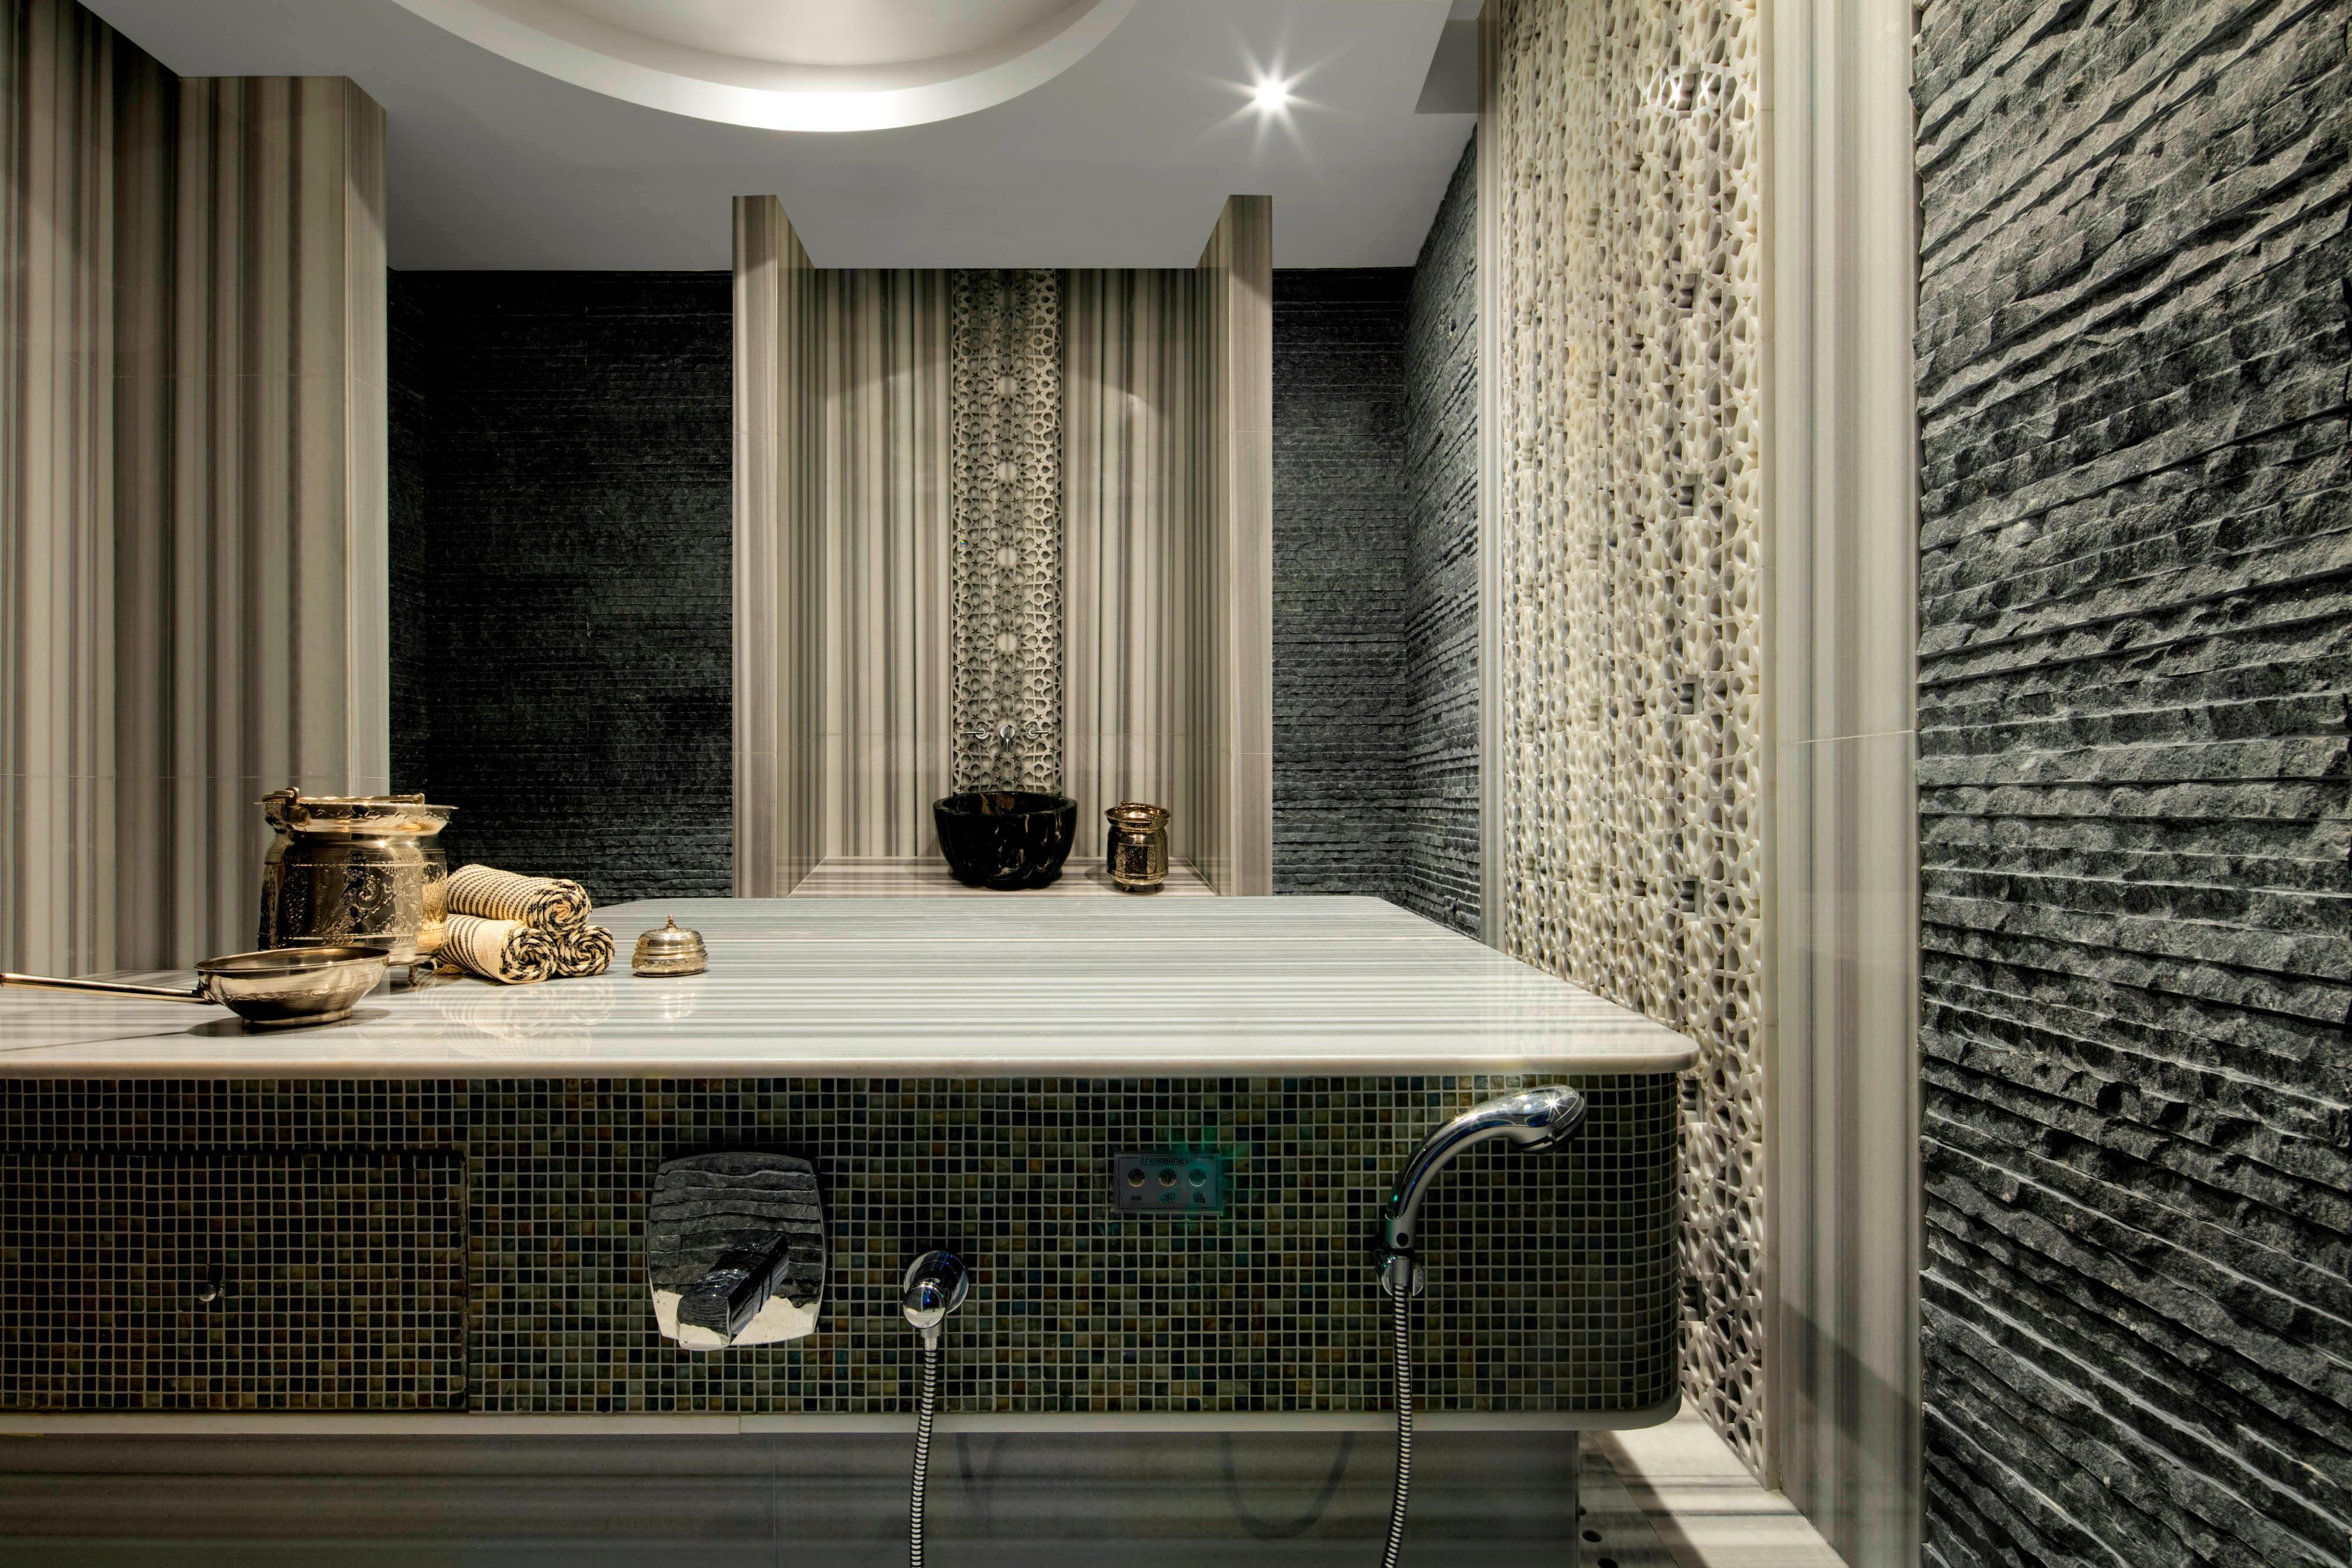 Shine Spa Hammam